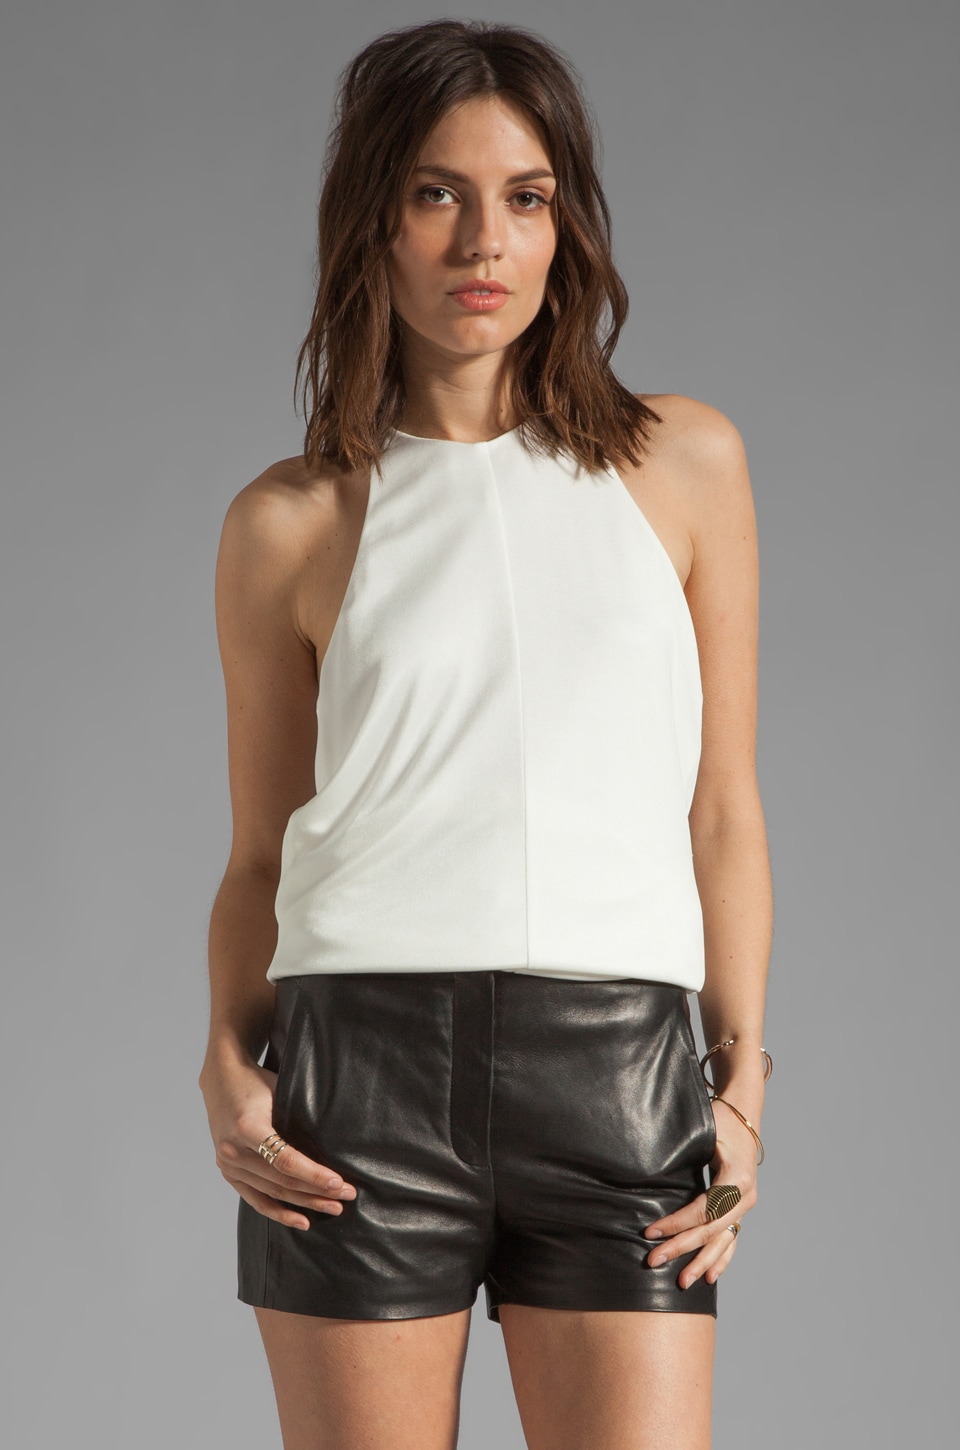 T by Alexander Wang Pique Double Knit Halter Top in Ivory